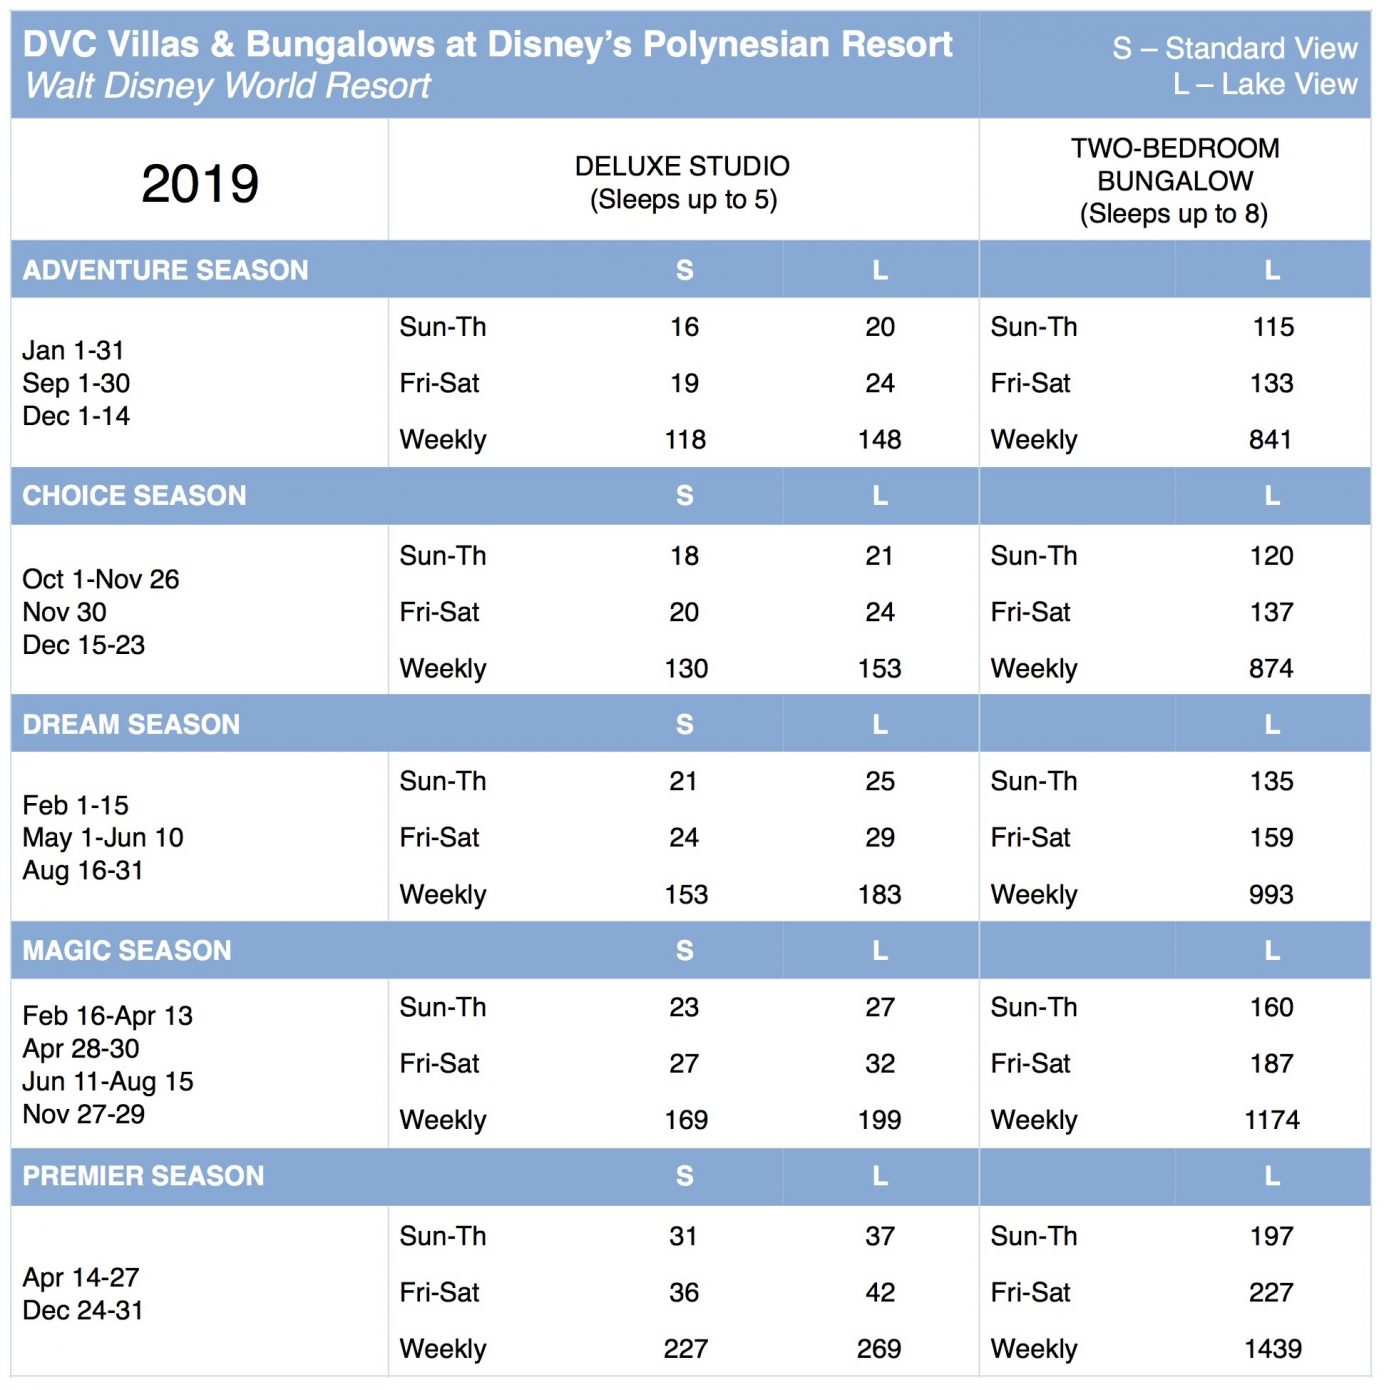 Disney's Polynesian DVC 2019 Point Chart